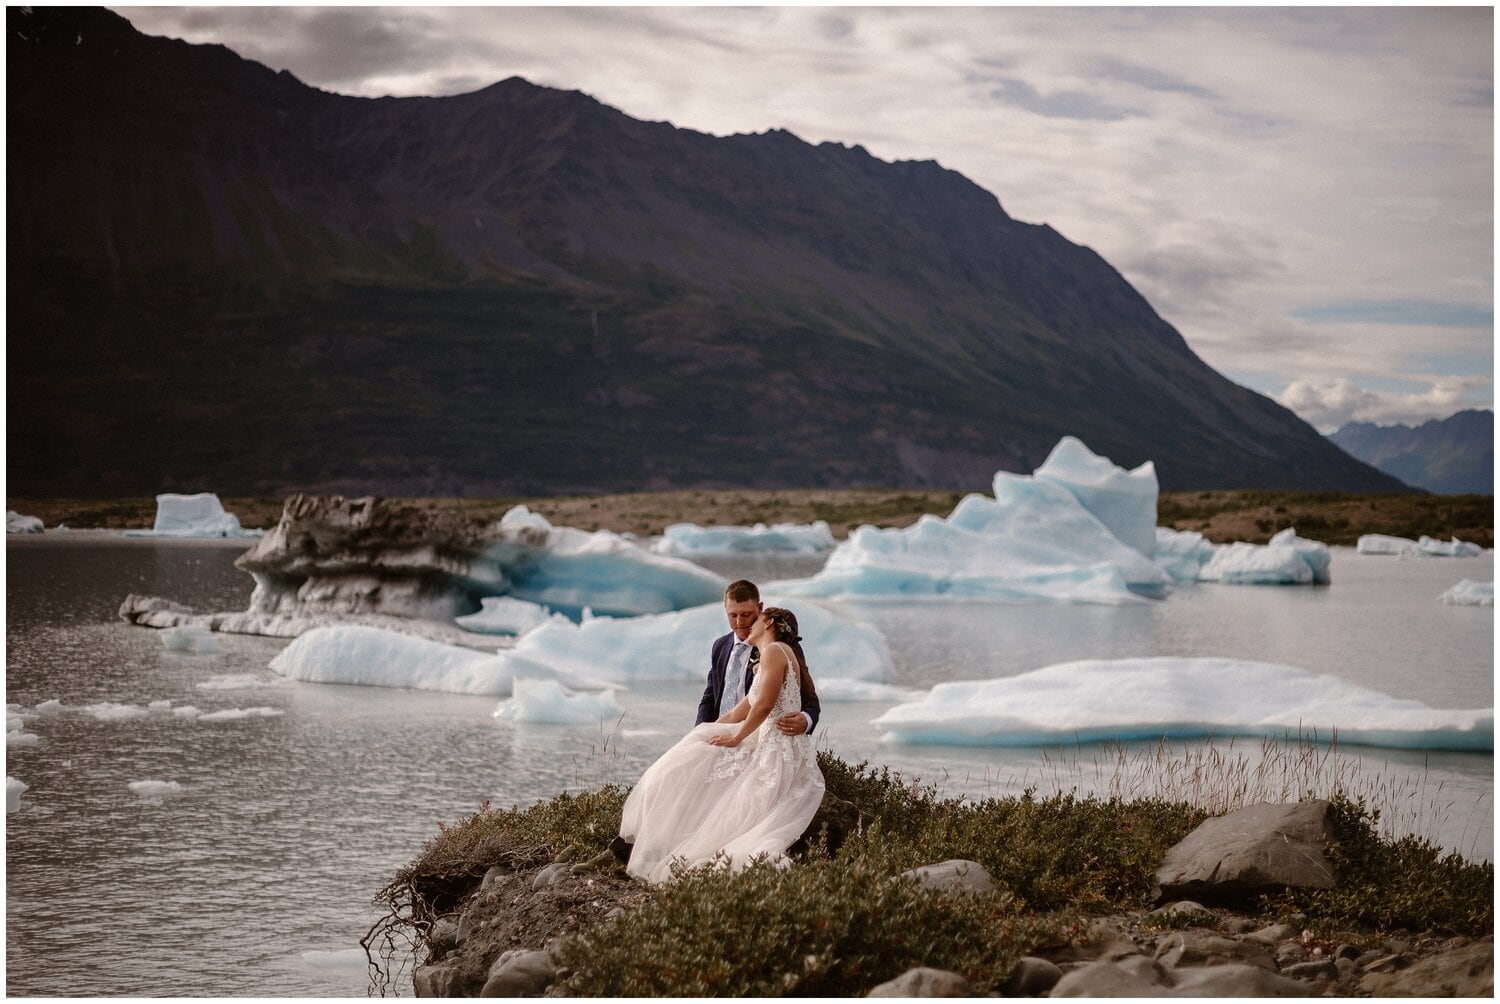 Bride and groom sit near a body of water with glaciers floating on their wedding day.